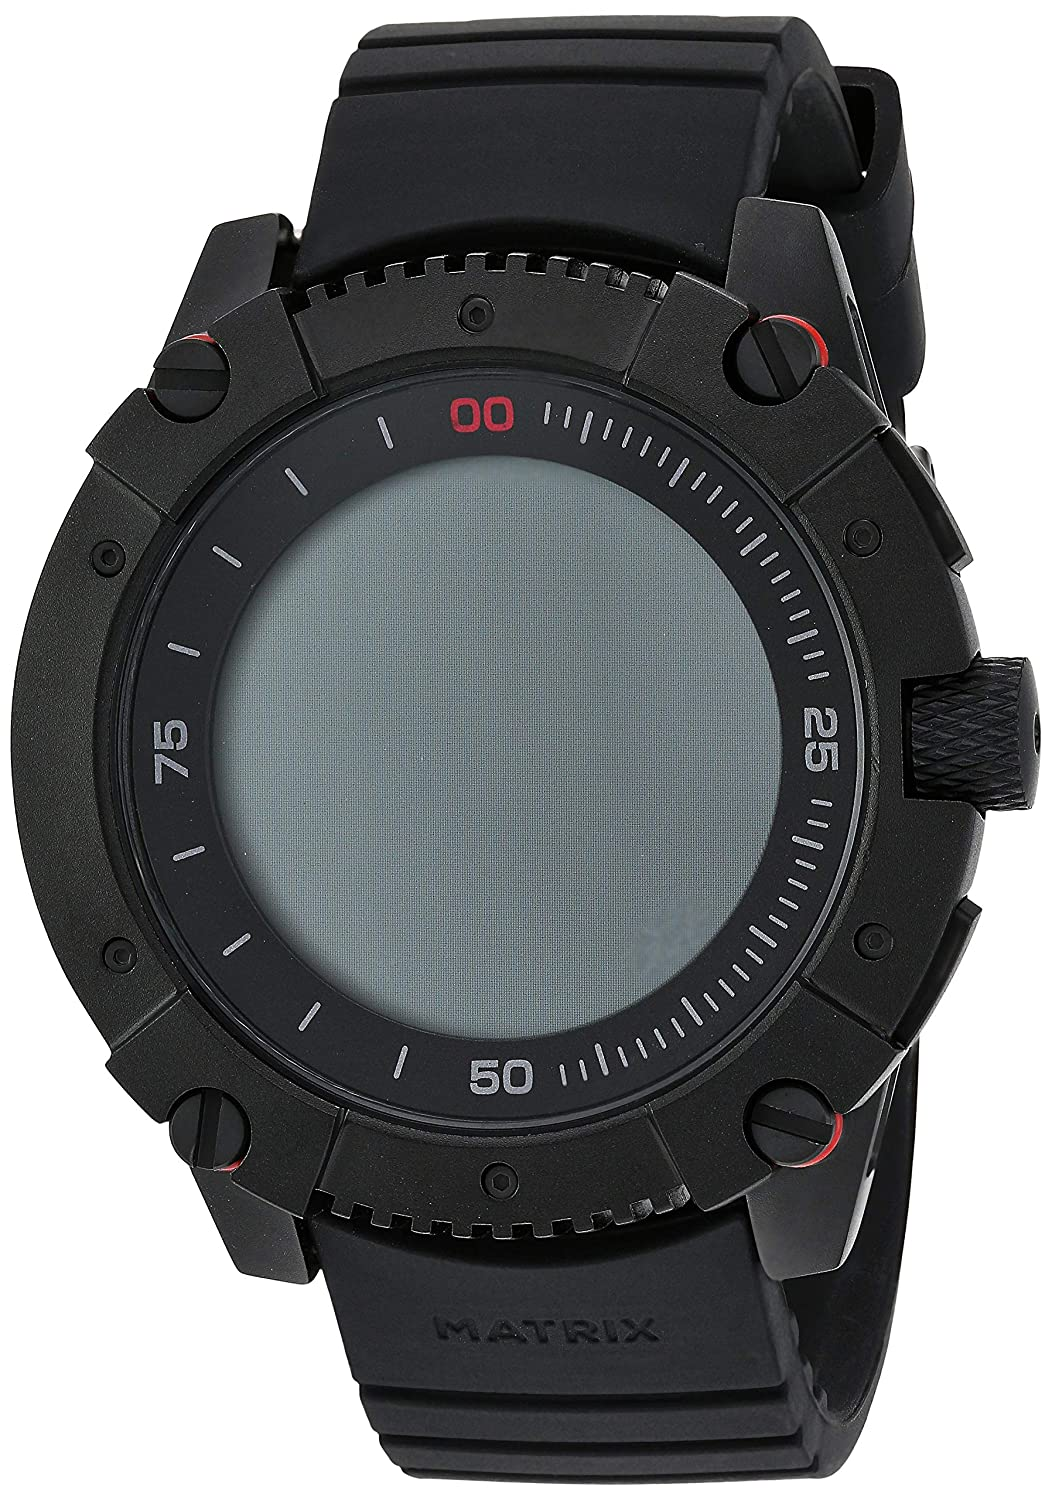 MATRIX Industries - Smartwatch (Resistente al Agua 200 m, Funciona con Calor Corporal), no necesita recargar, con PowerWatch App - Color Negro